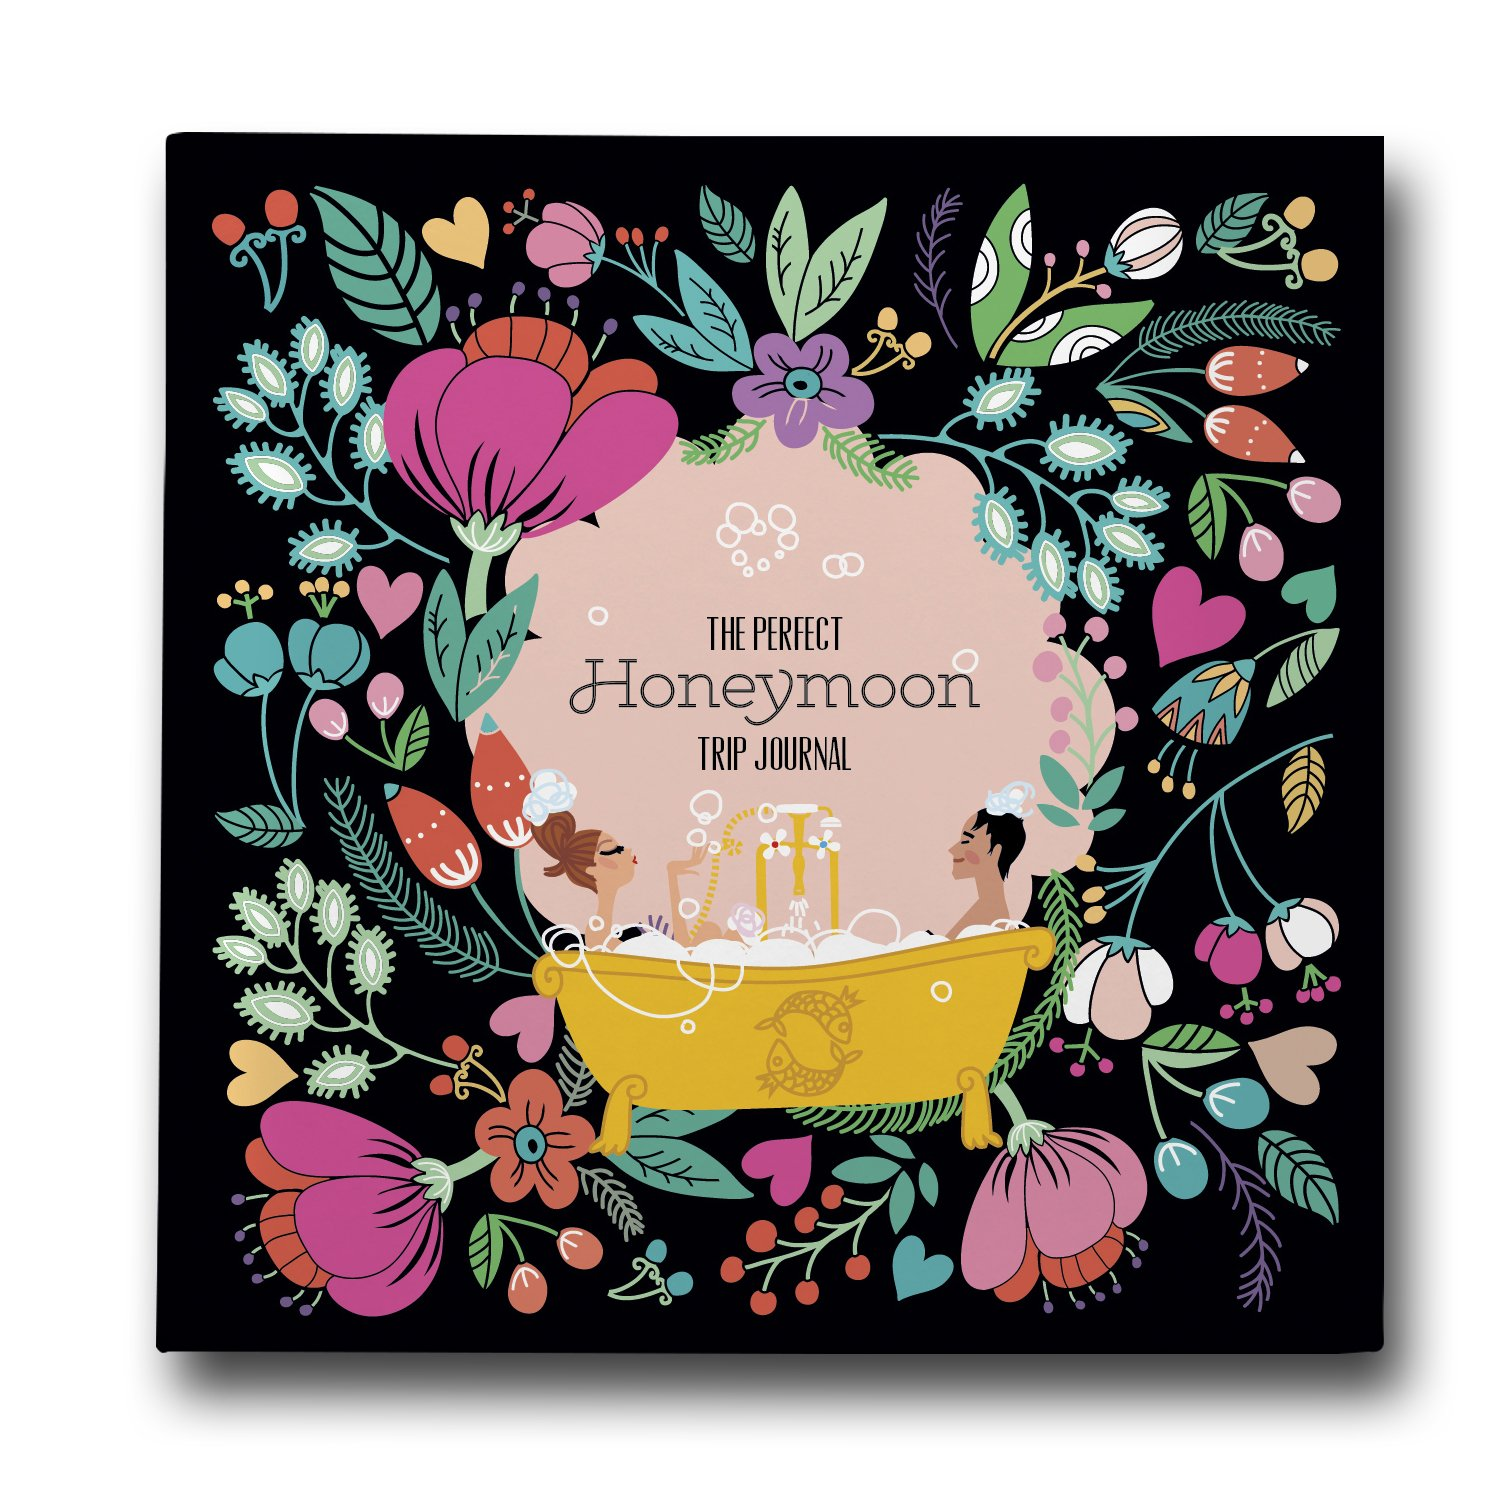 Honeymoon Get Away, A Travel Journal for Newlyweds. 1st Big Trip Together Memory Book to Save the Happy Adventures of the New Husband and Wife. Just Married Wedding Gift for Him and Her.